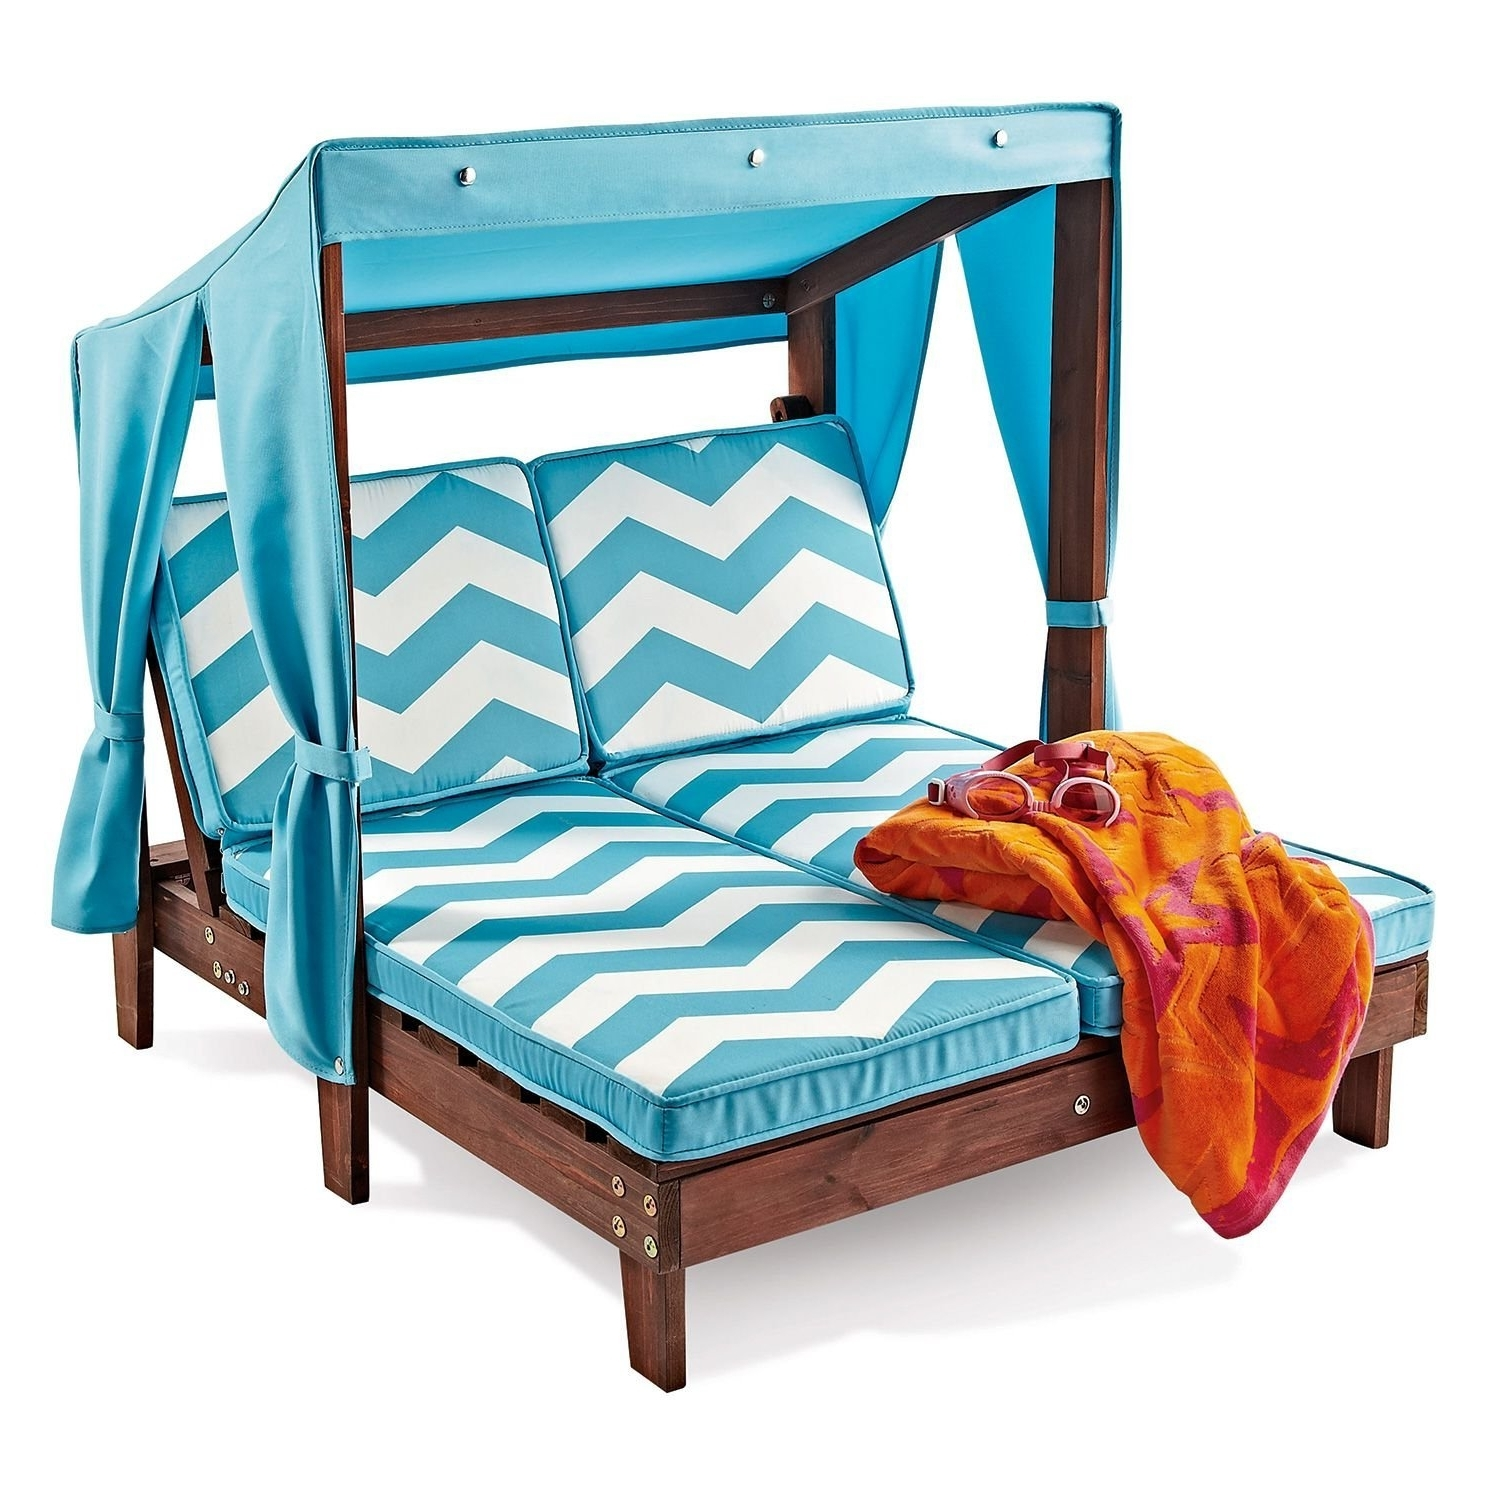 Well Liked Kidkraft Double Chaise Lounges Pertaining To Amazon: Outdoor Kid's Double Chaise Lounge Chair W/ Canopy (View 8 of 15)